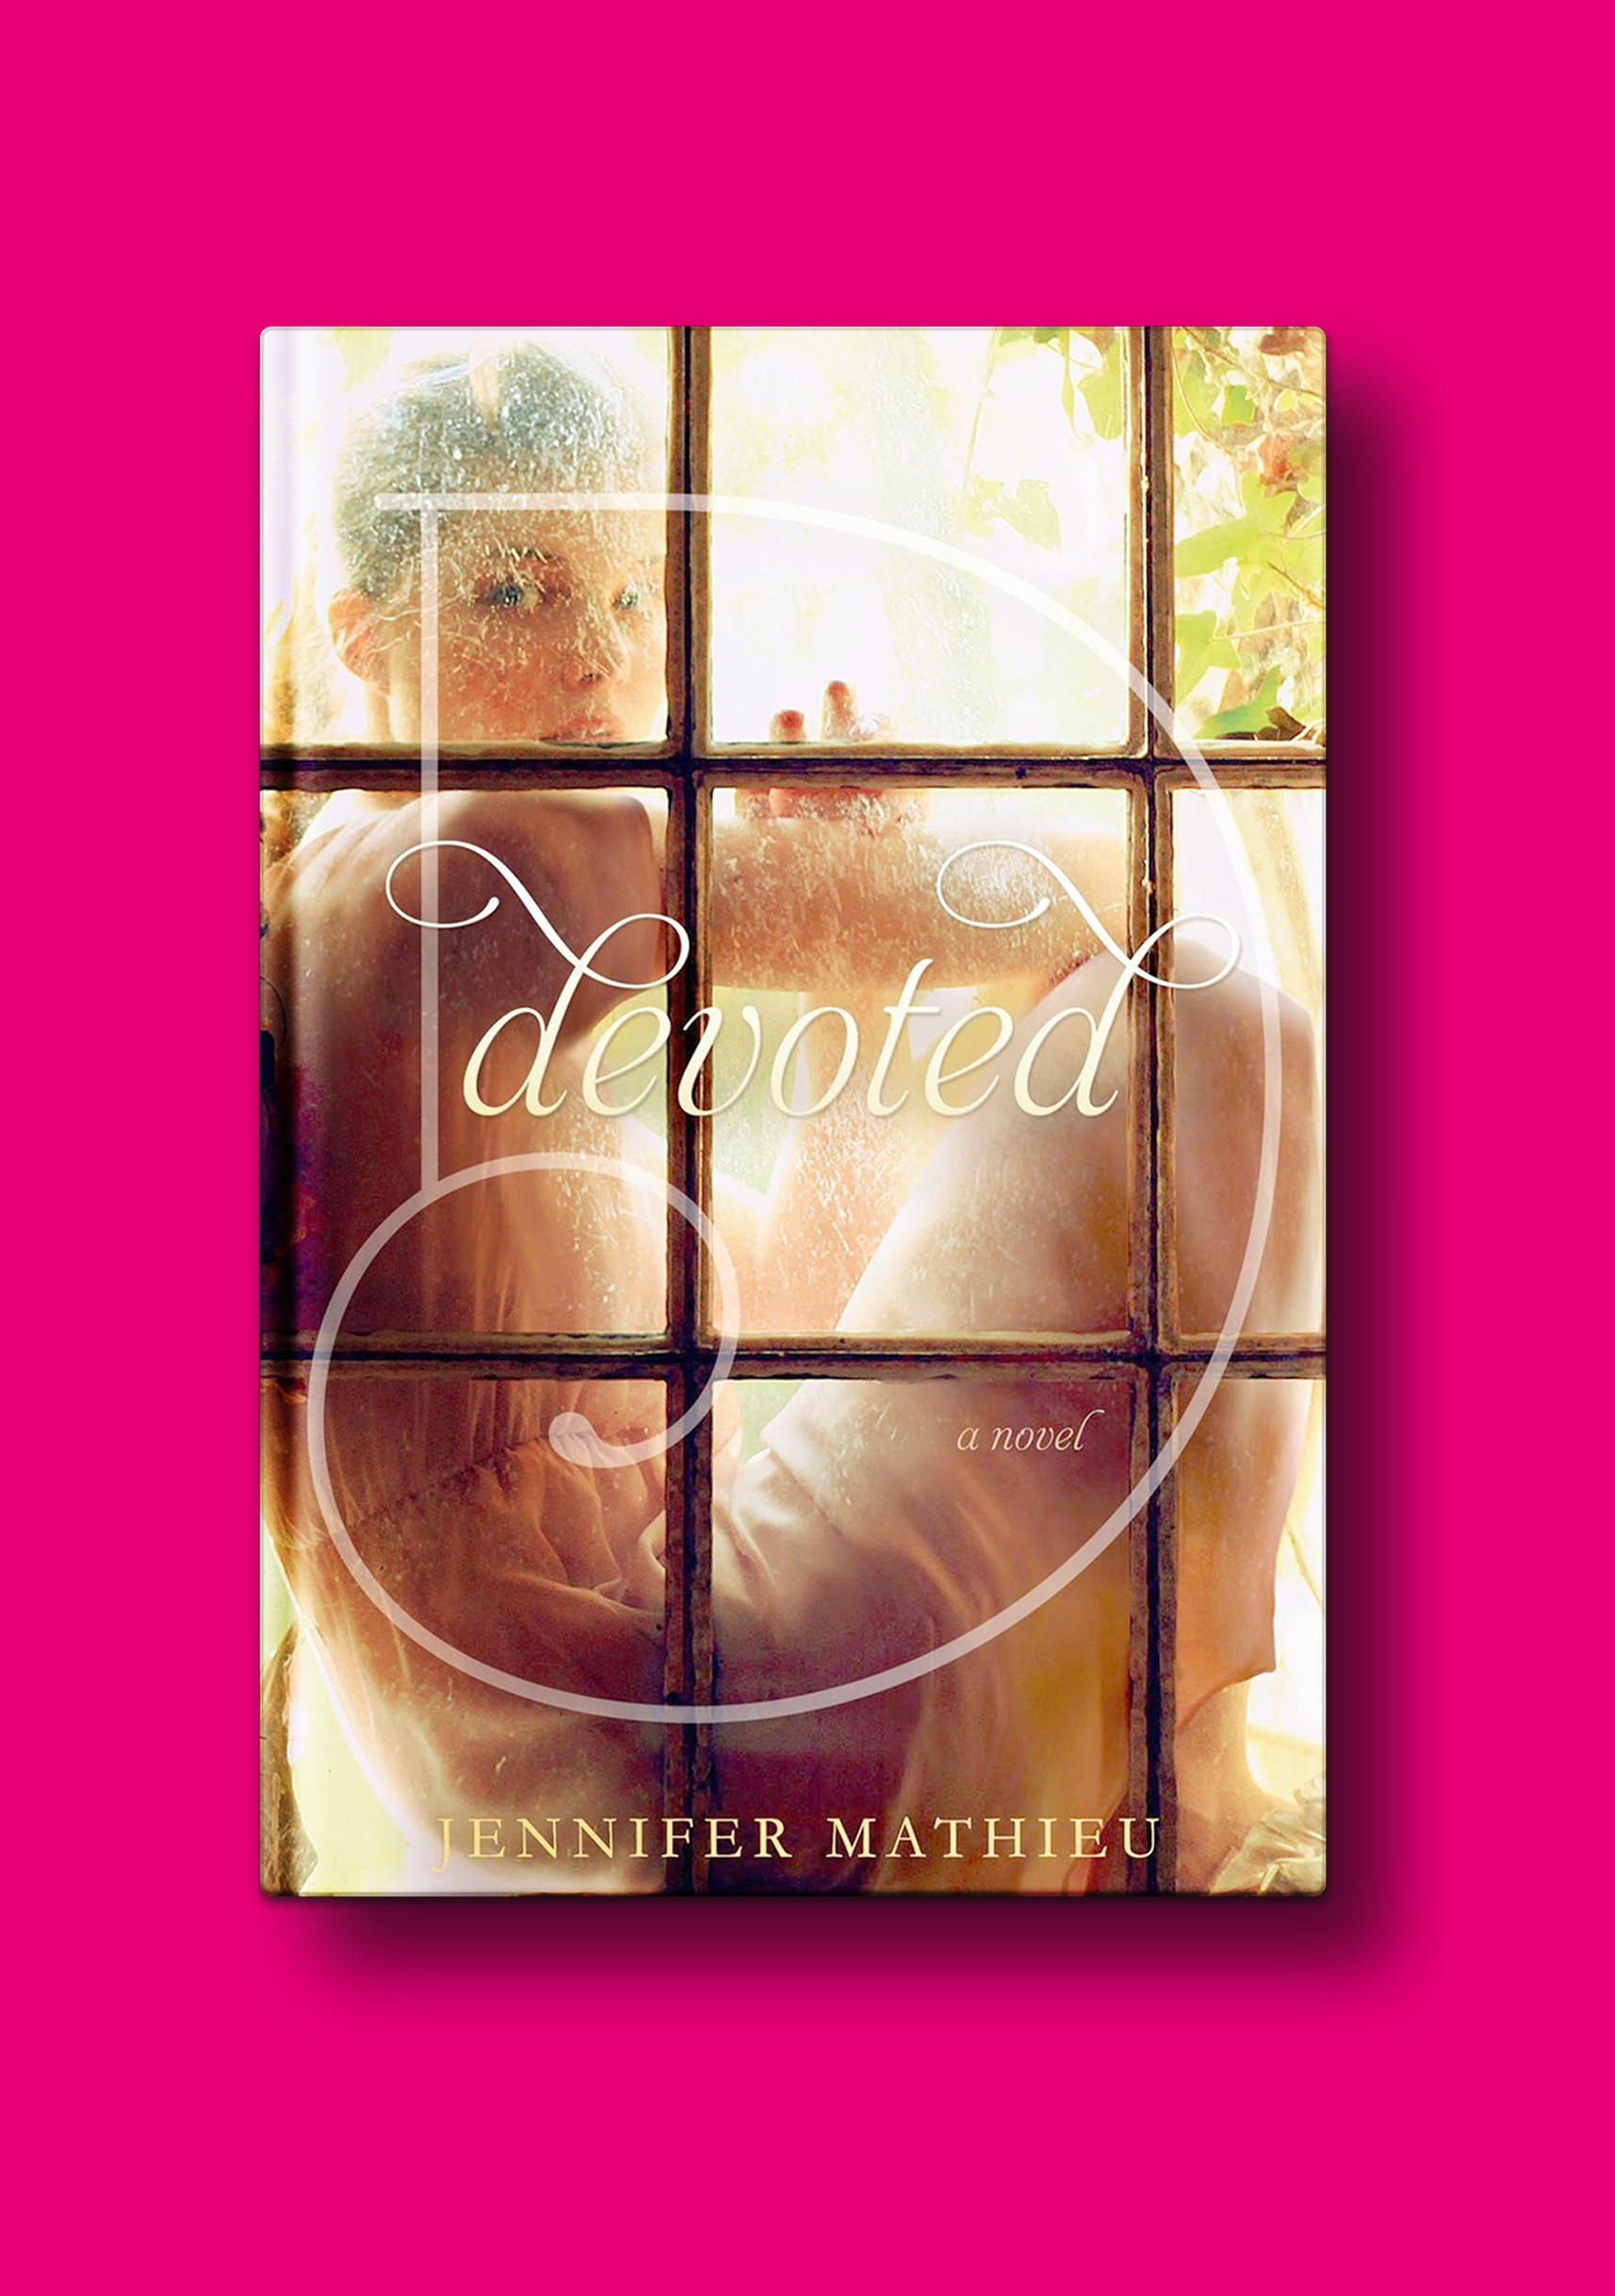 DEVOTED - Rachel's devotion just might destroy her soul, but only she can save herself.